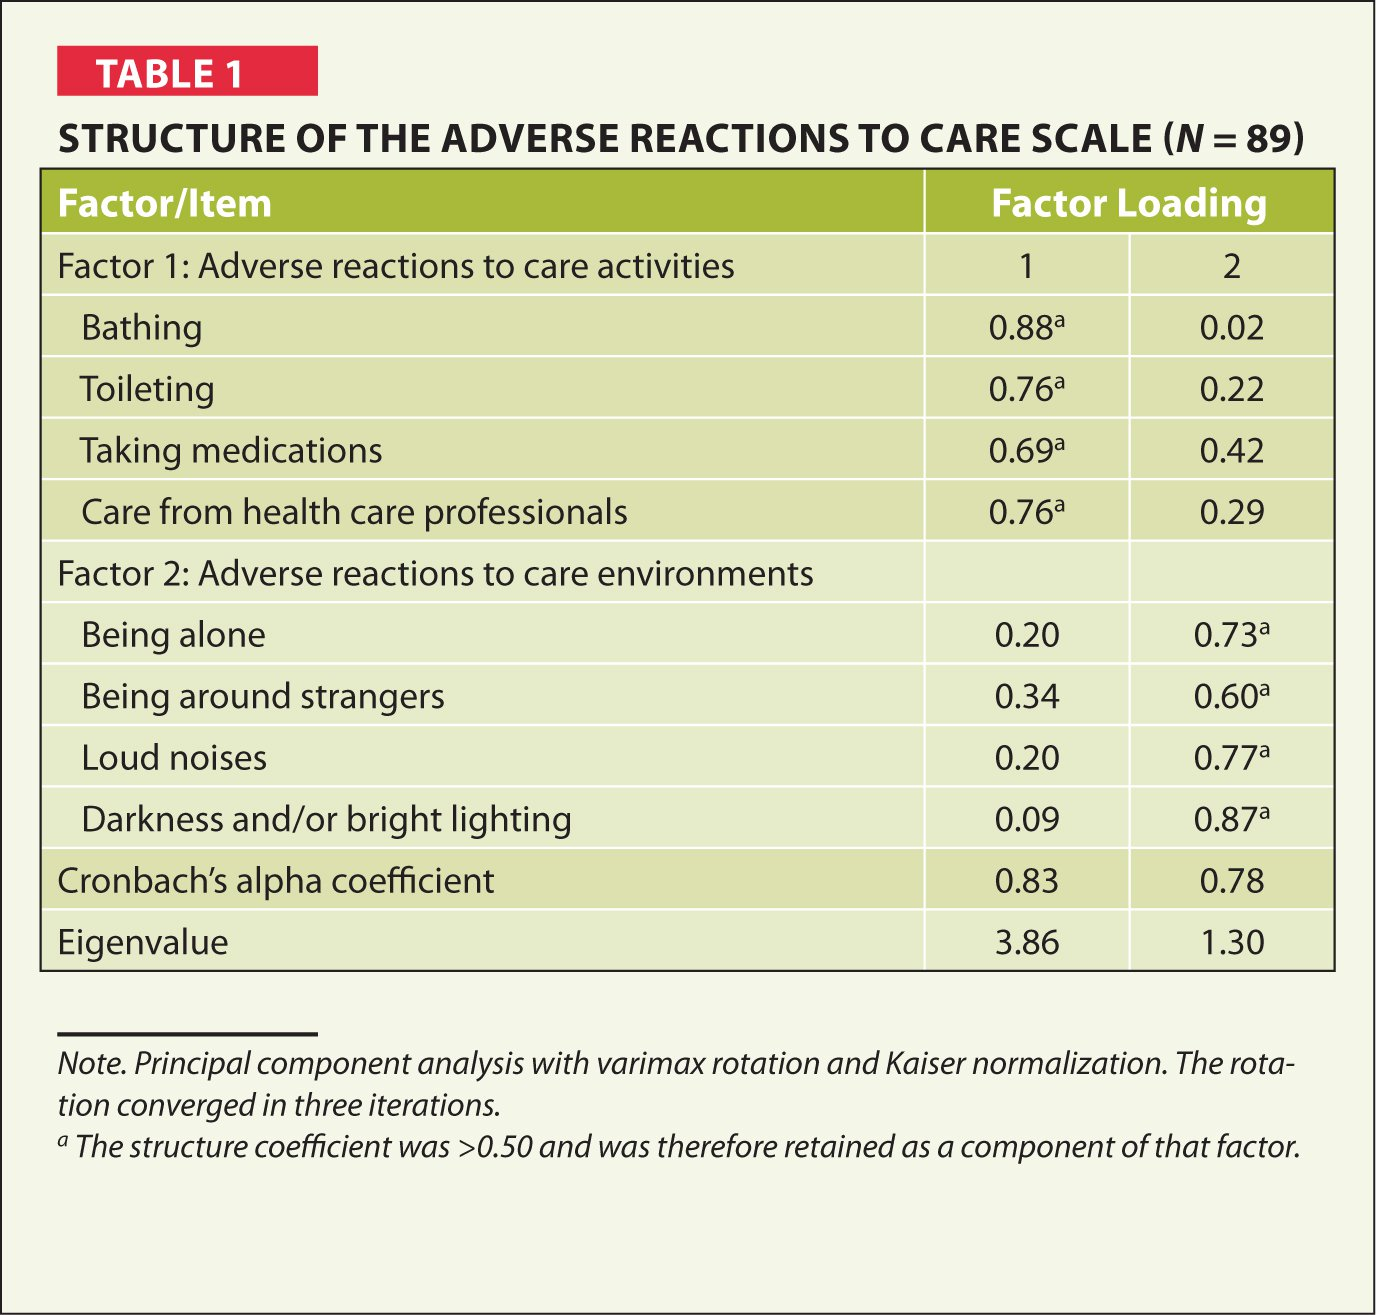 Structure of the Adverse Reactions to Care Scale (N = 89)